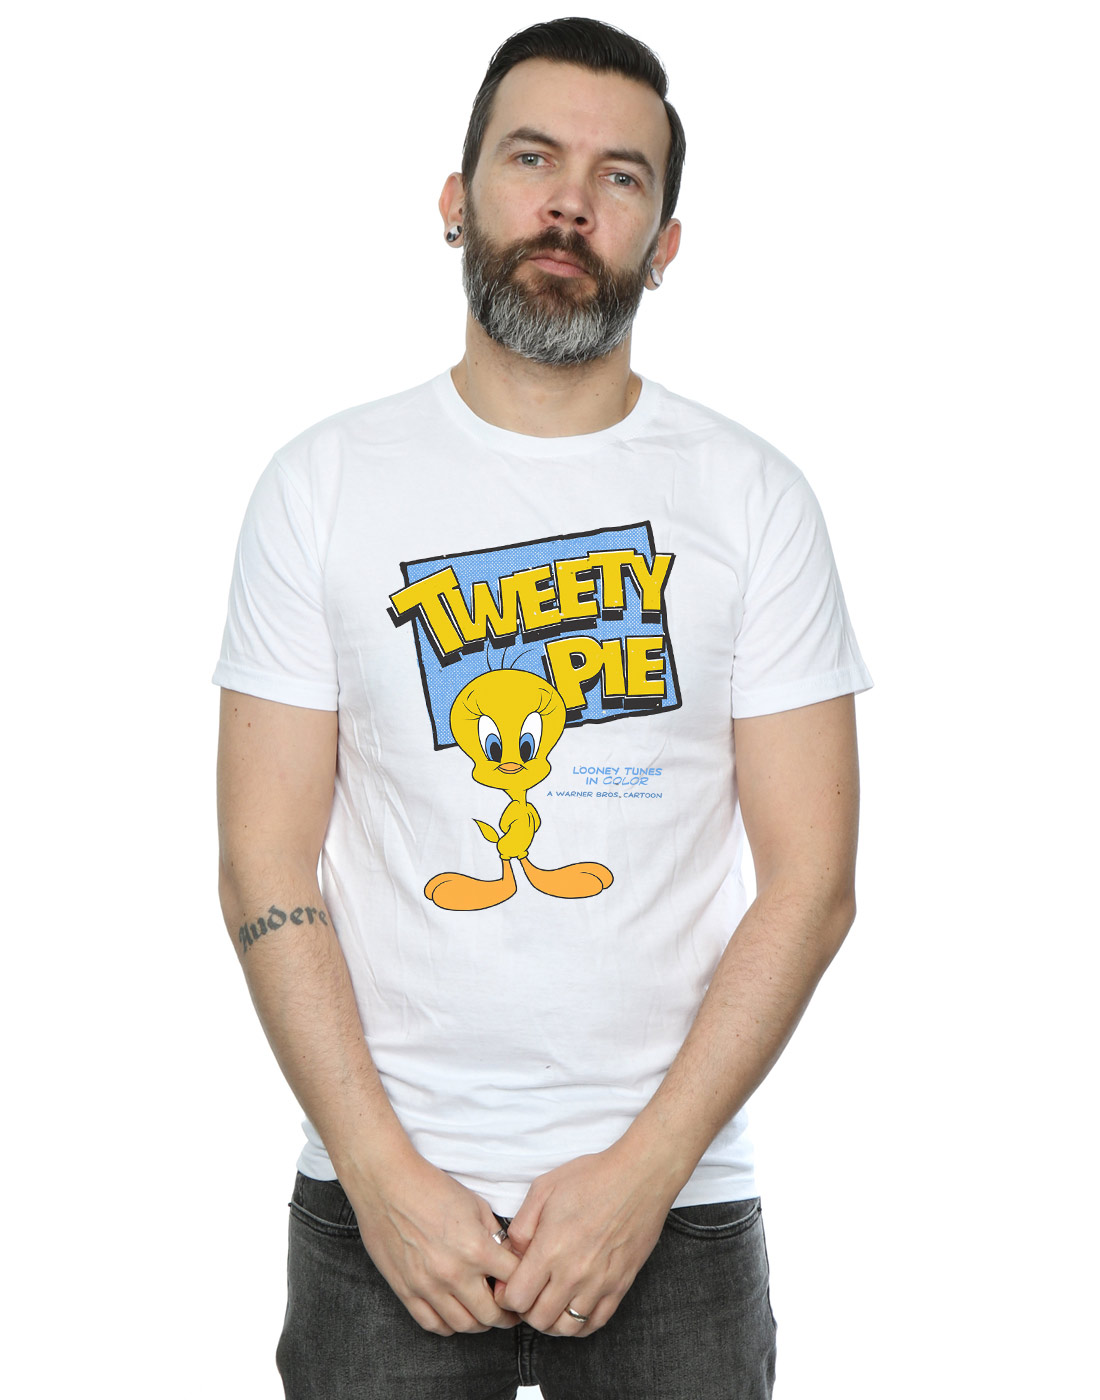 Looney-Tunes-Men-039-s-Classic-Tweety-Pie-T-Shirt